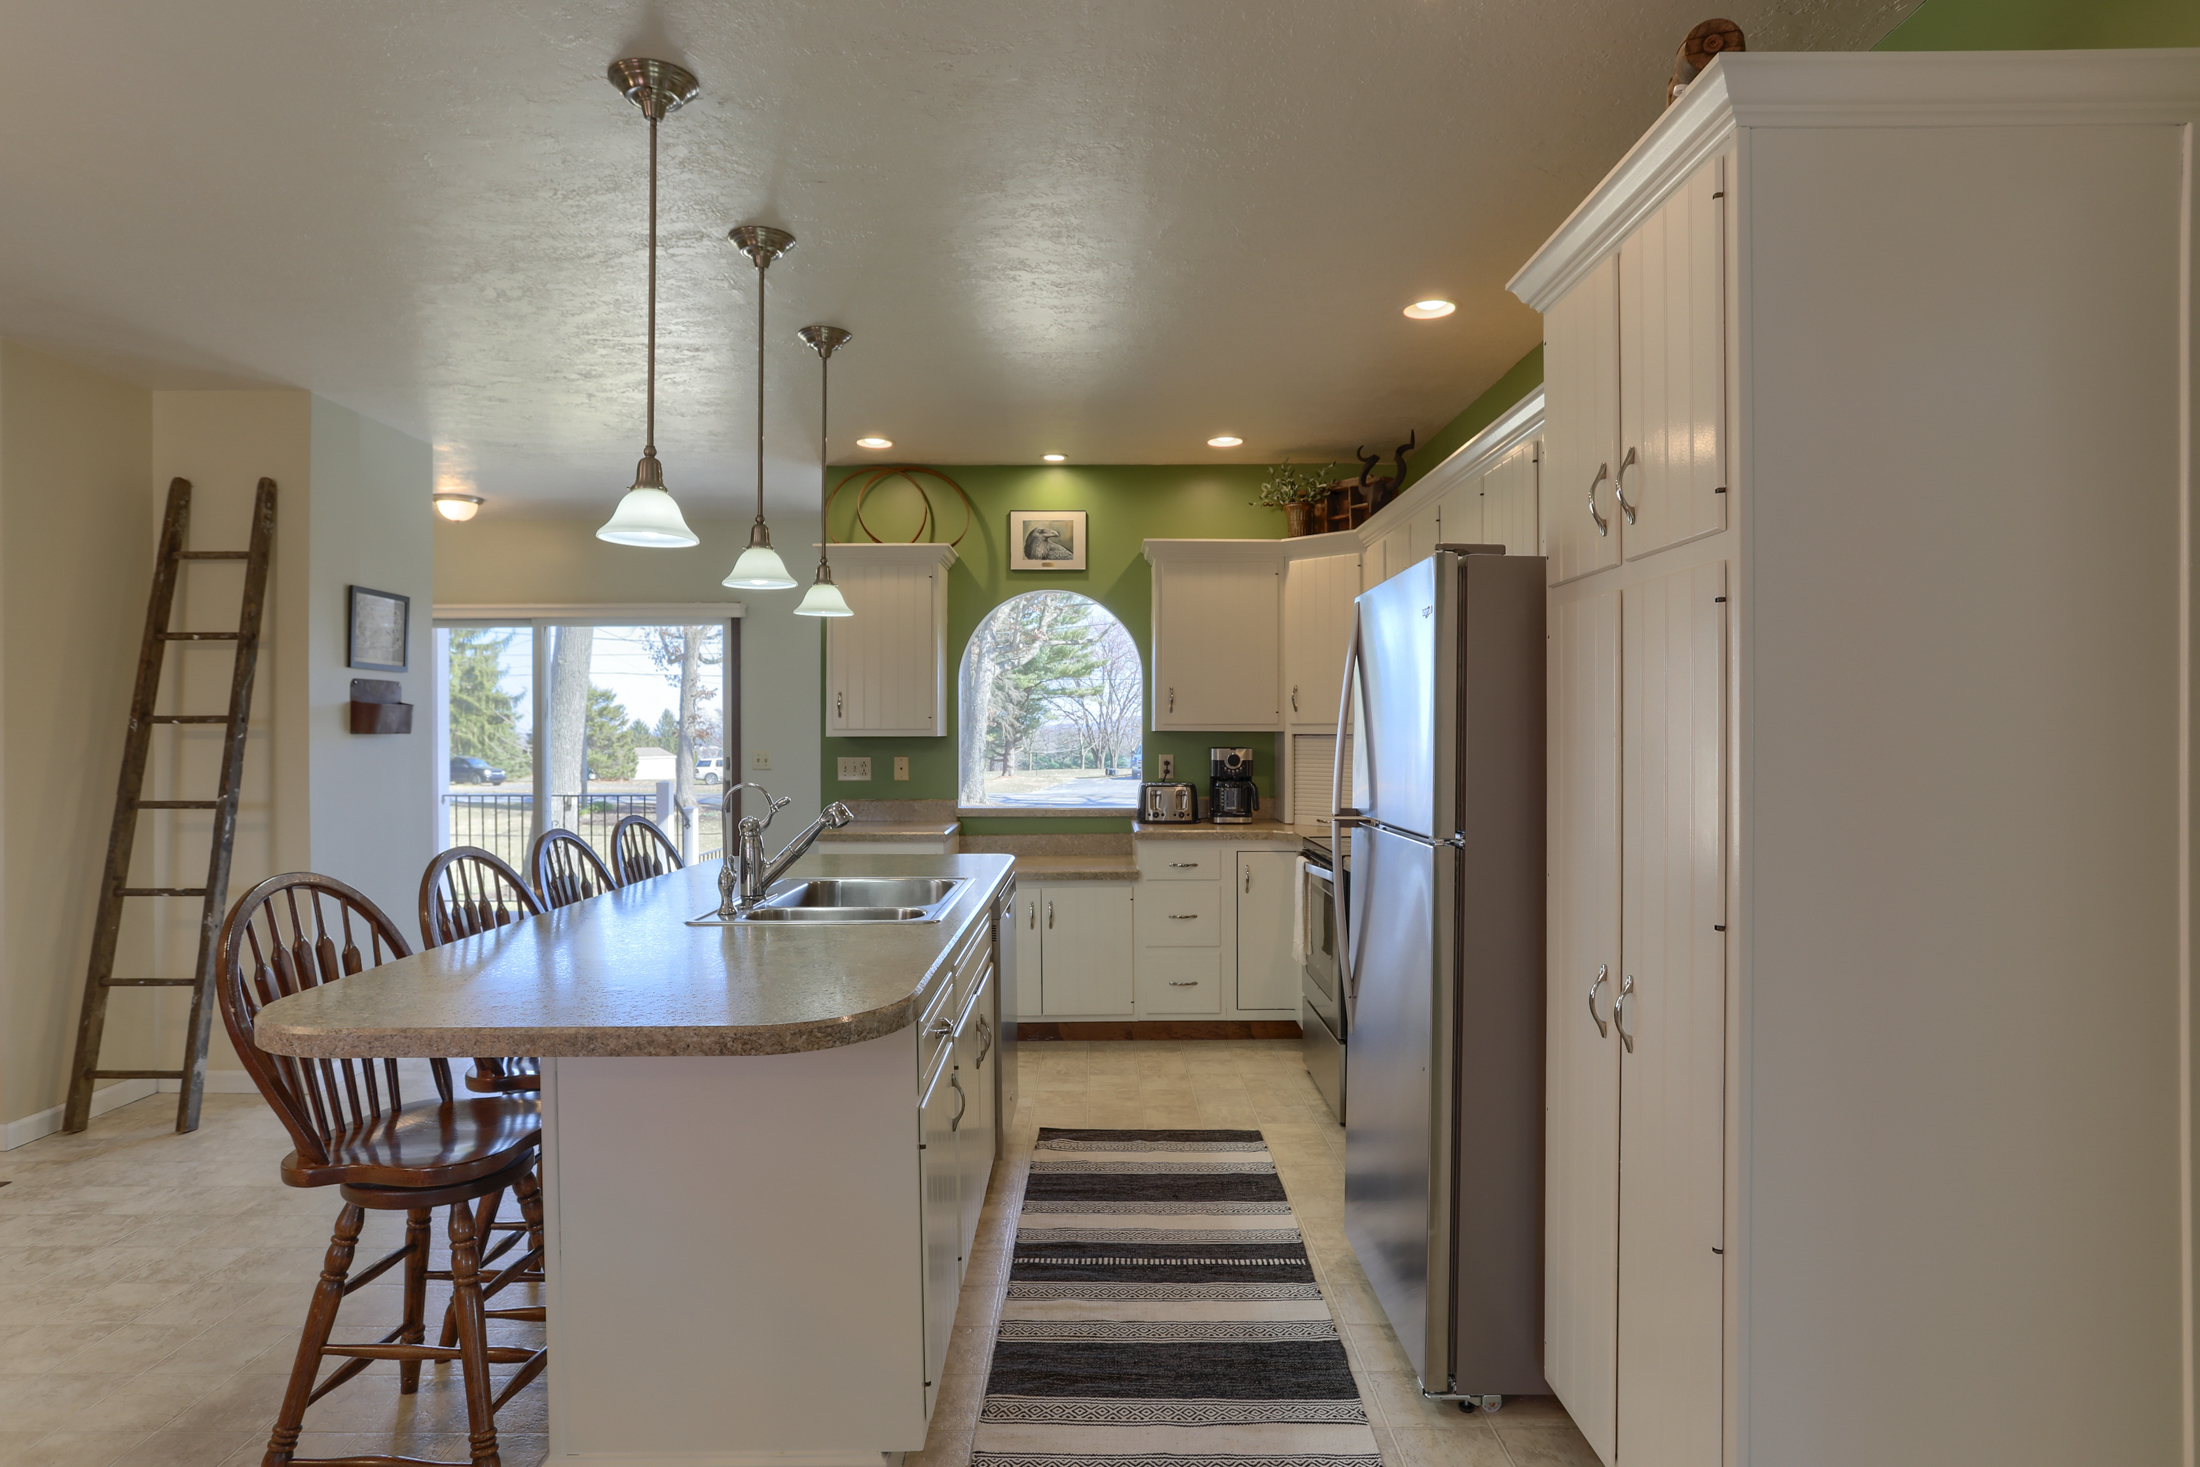 285 Strack Drive - Kitchen with all new appliances and view of quiet wooded setting